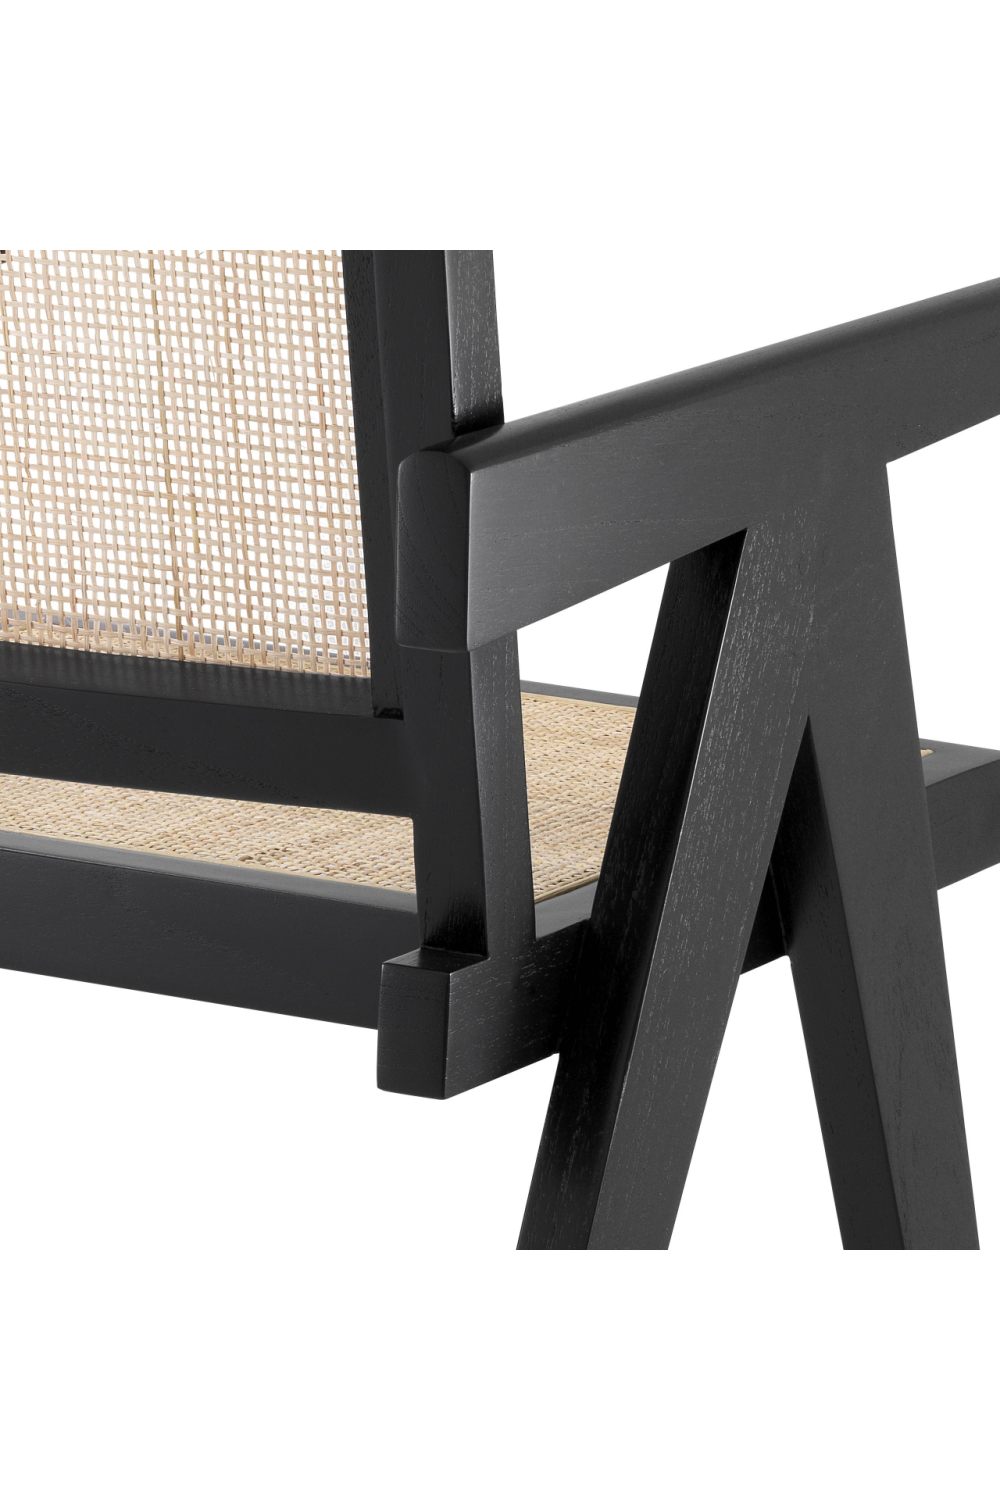 Black Rattan Dining Chair | Eichholtz Aristide | Woodfurniture.com